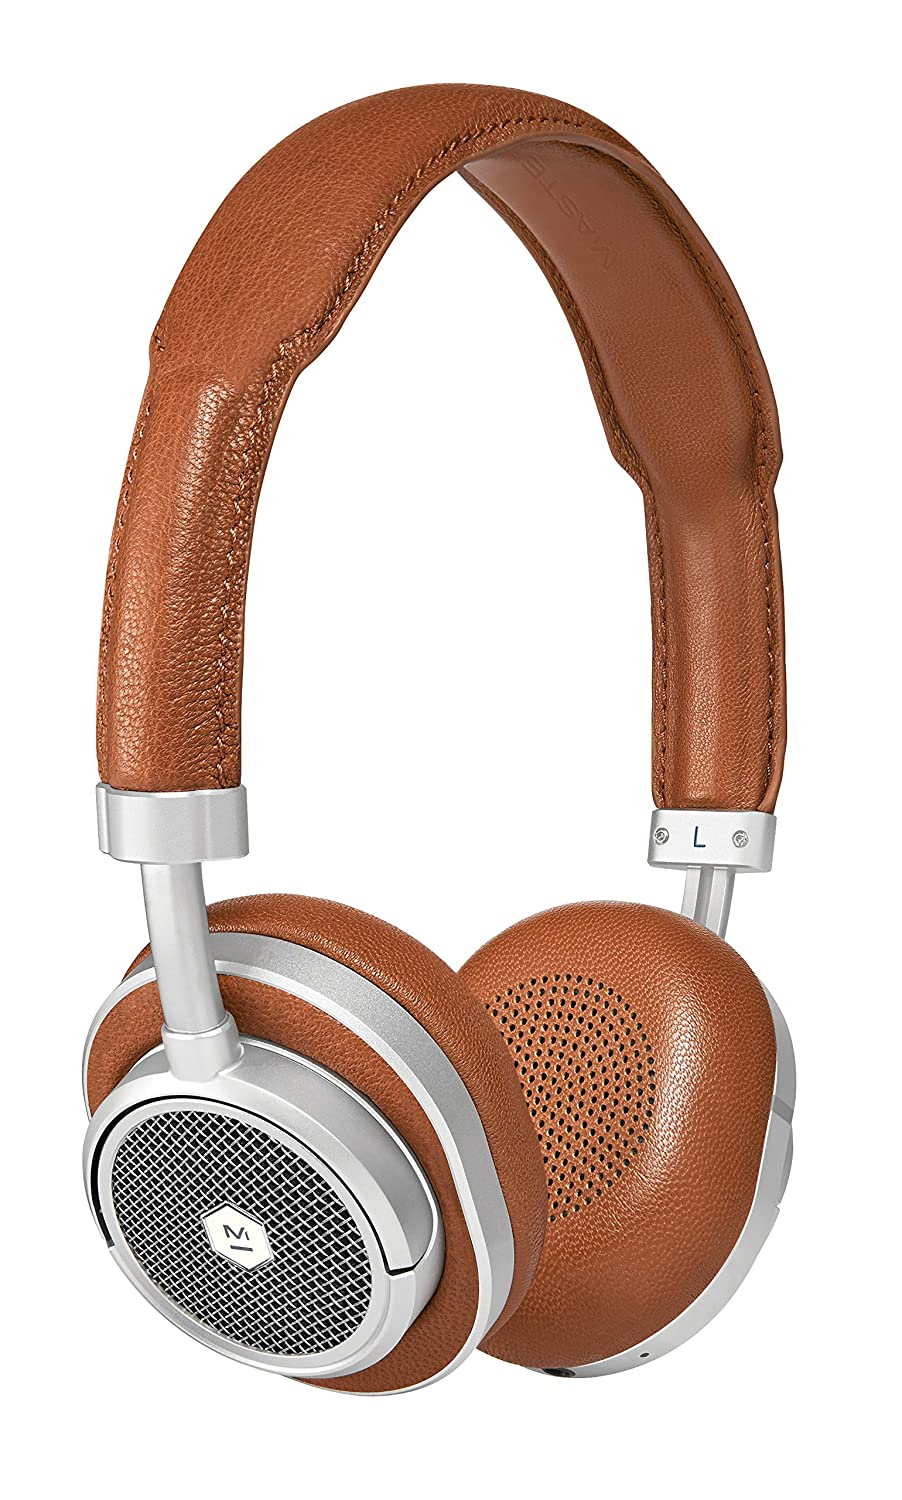 Master Dynamic MW50 Noise-Isolating Wireless Headphones Foldable, Over-Ear Headphones – Bluetooth Compatible with Mic